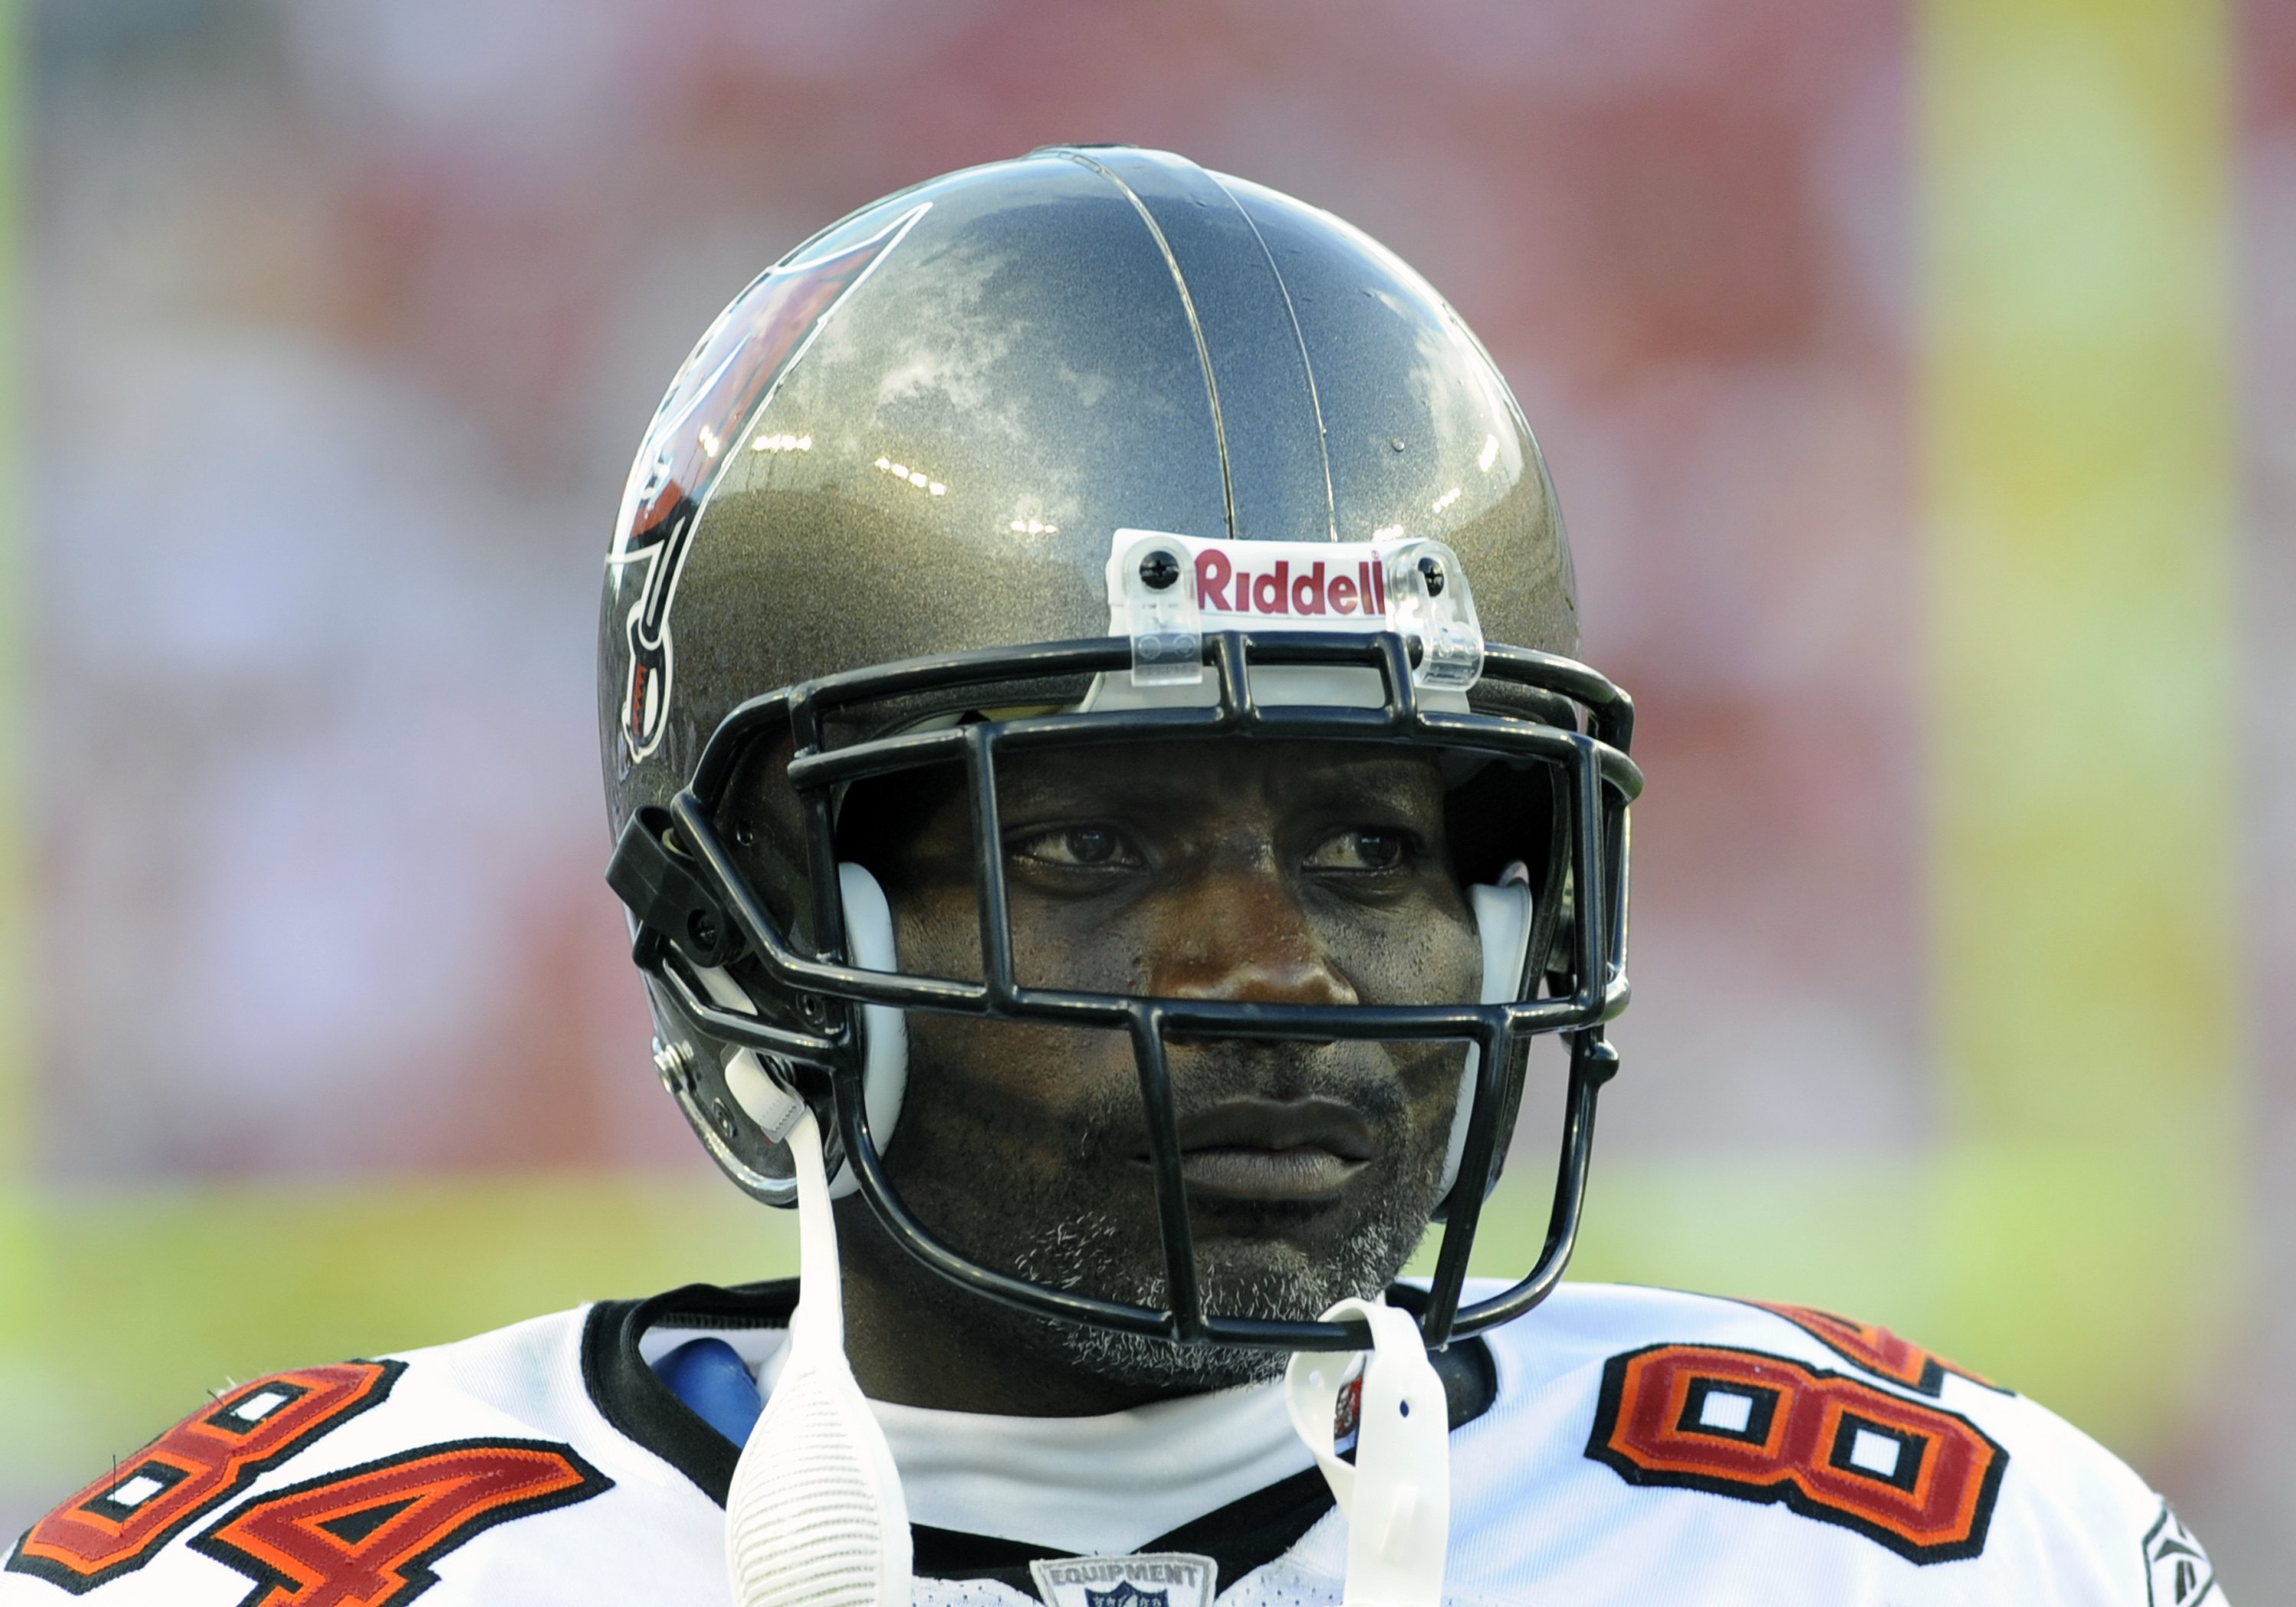 TAMPA, FL - SEPTEMBER 14: Wide receiver Joey Galloway #84 of the Tampa Bay Buccaneers watches play against the Atlanta Falcons at Raymond James Stadium on September 14, 2008 in Tampa, Florida.  The Buccaneers defeated the Falcons 24-9. (Photo by Al Messer